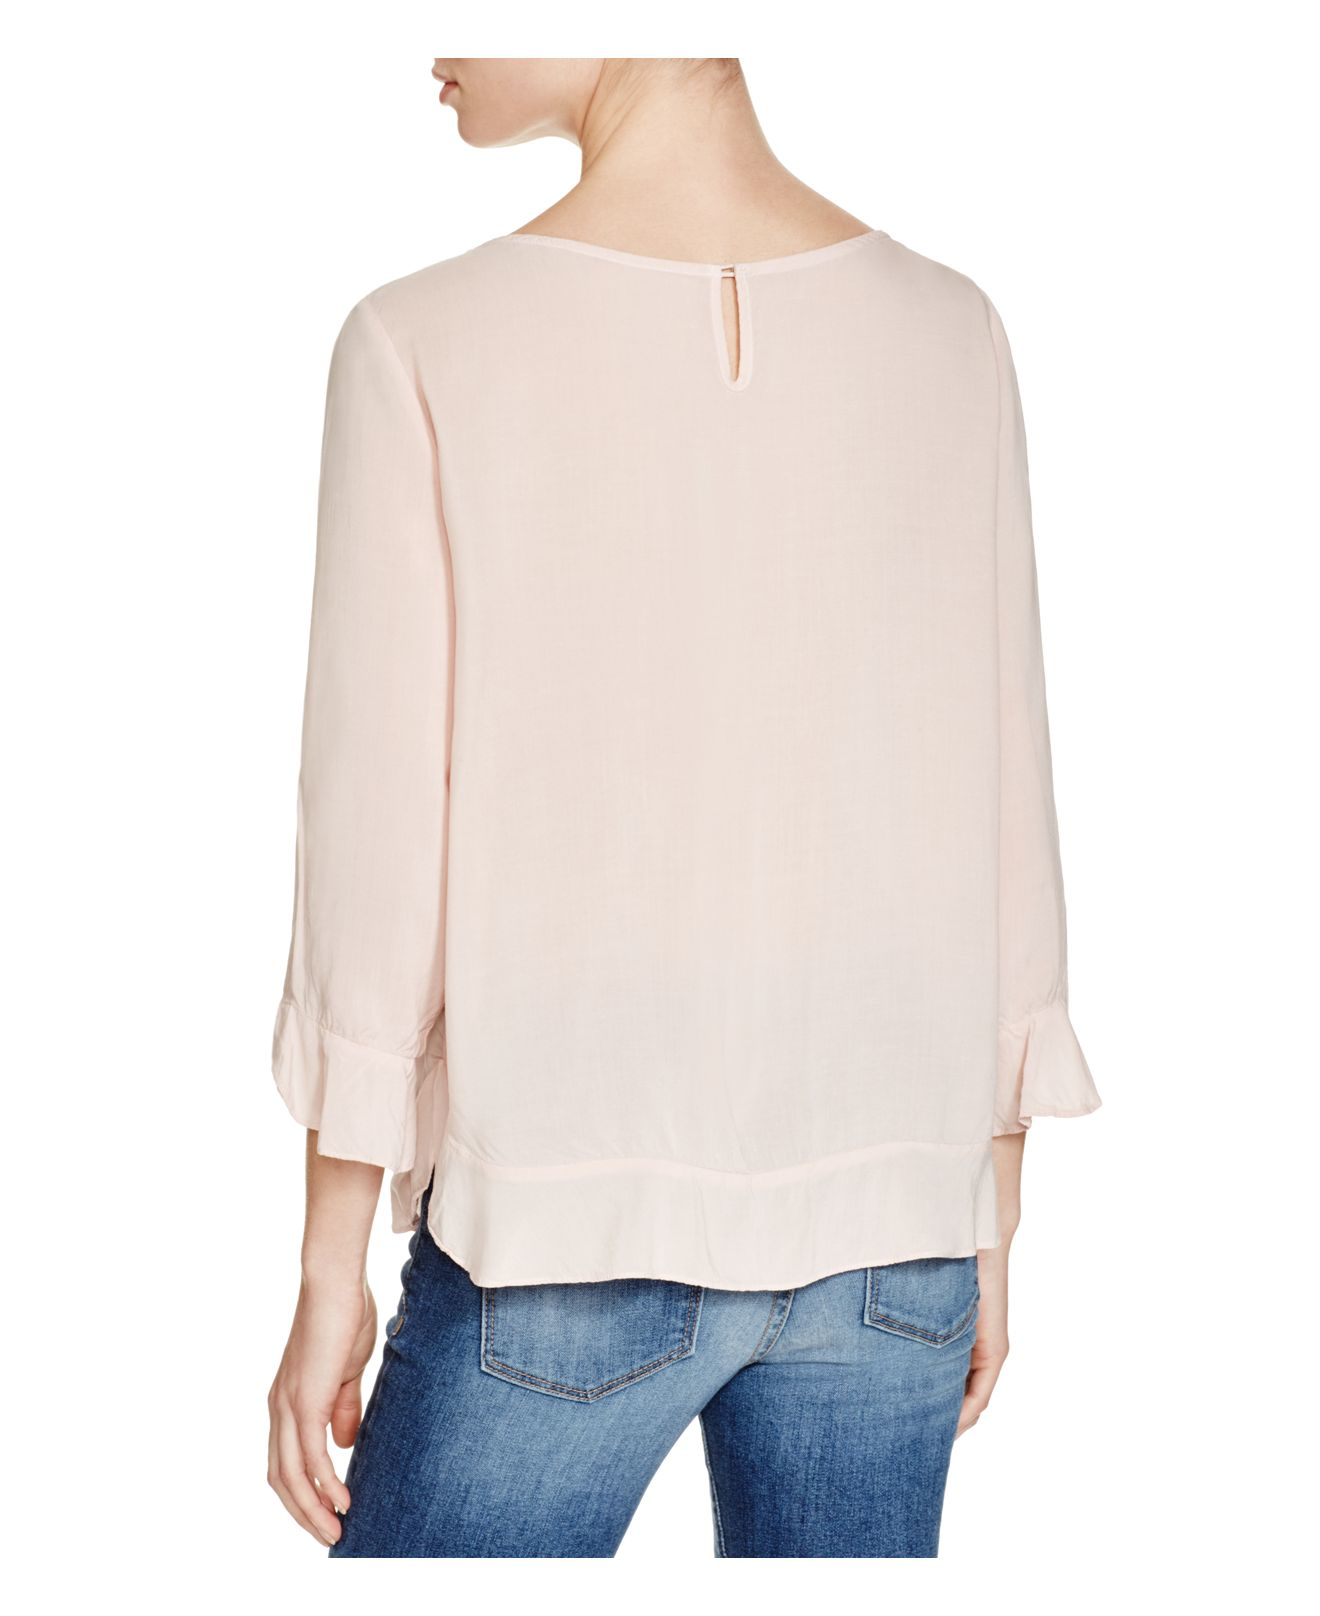 Pink Blouse Marks And Spencer 12